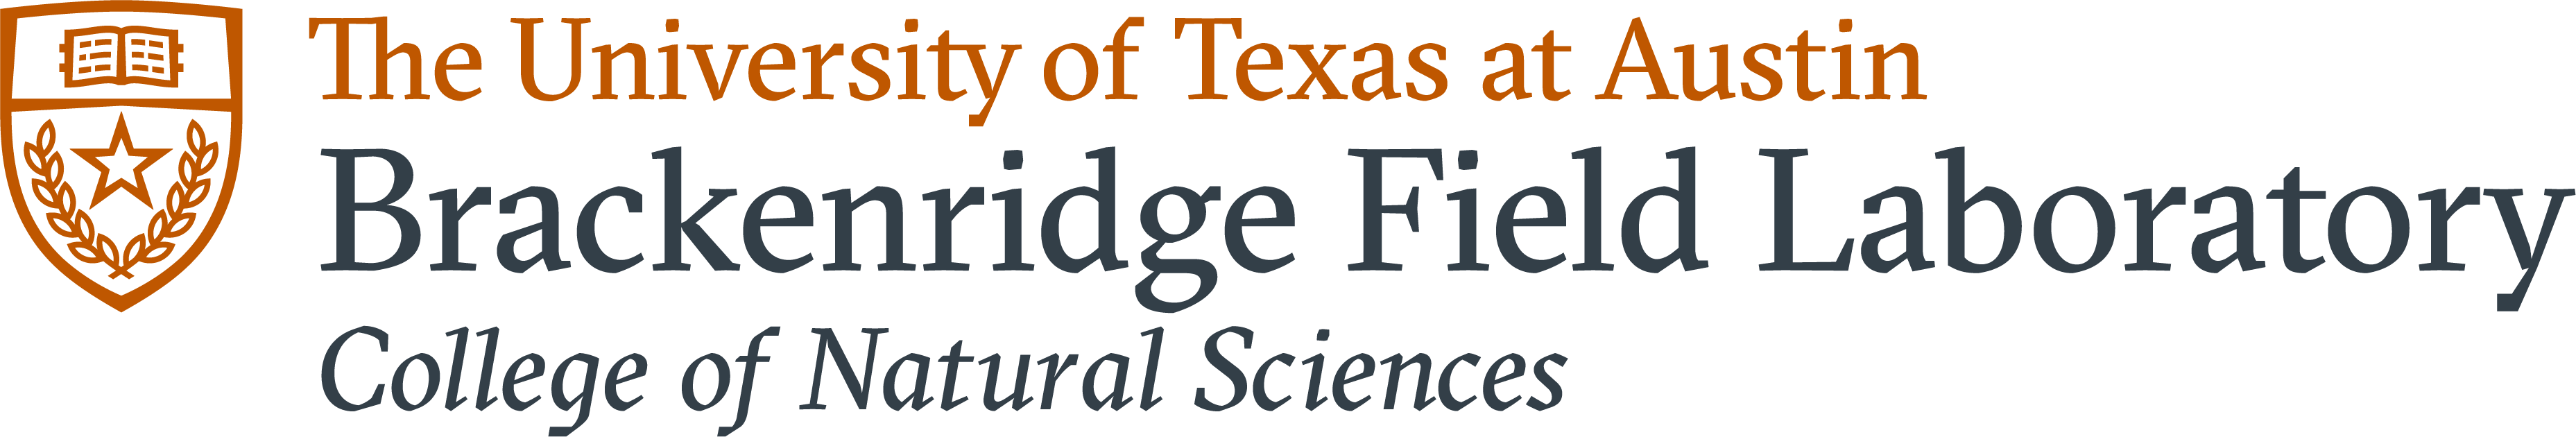 University Of Texas College Of Natural Sciences Career Services